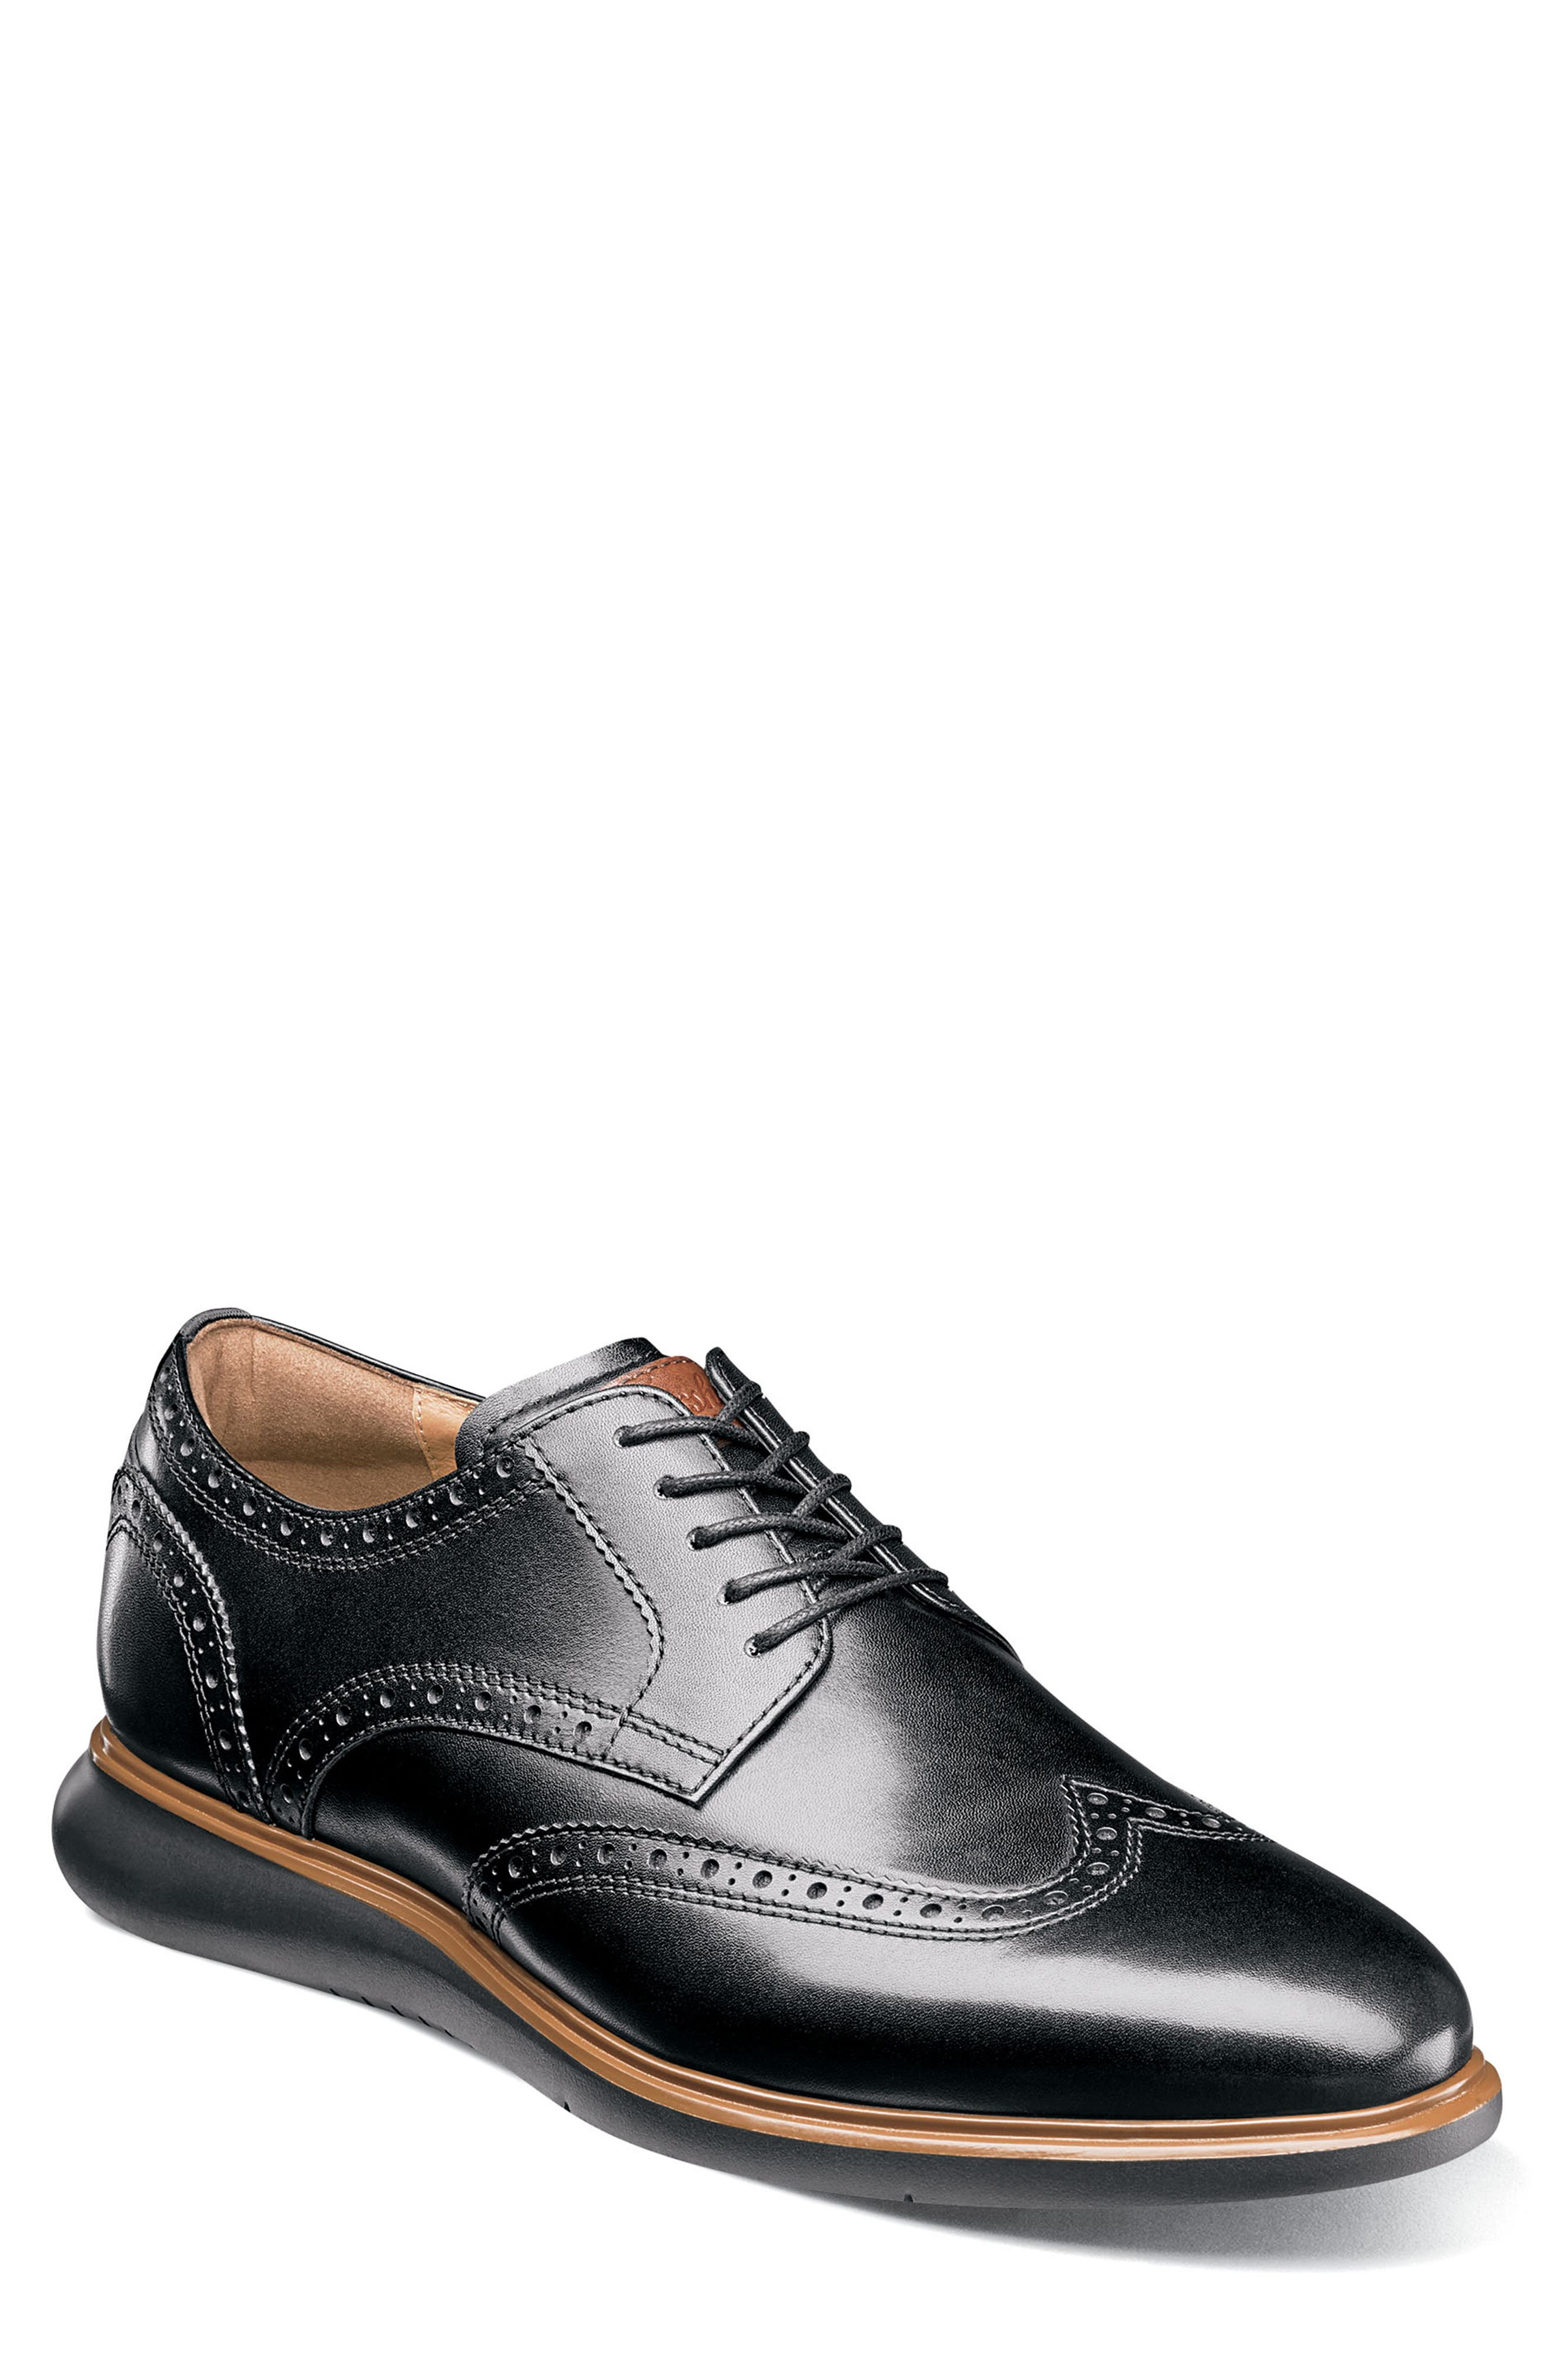 FLORSHEIM, Fuel Wingtip, Main thumbnail 1, color, BLACK LEATHER